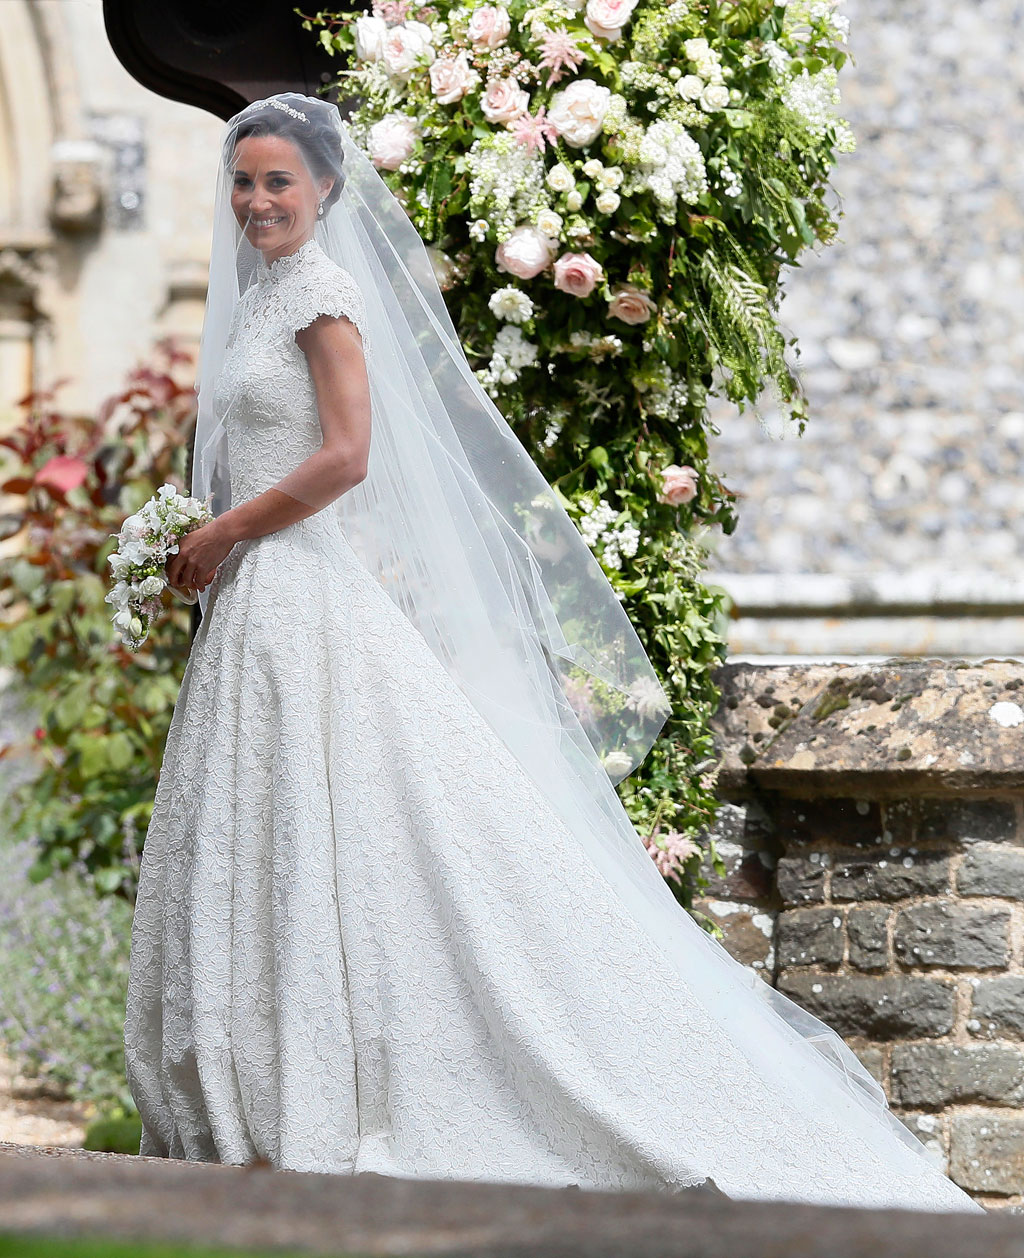 The bride wore a gown by British designer Giles Deacon. (AAP)